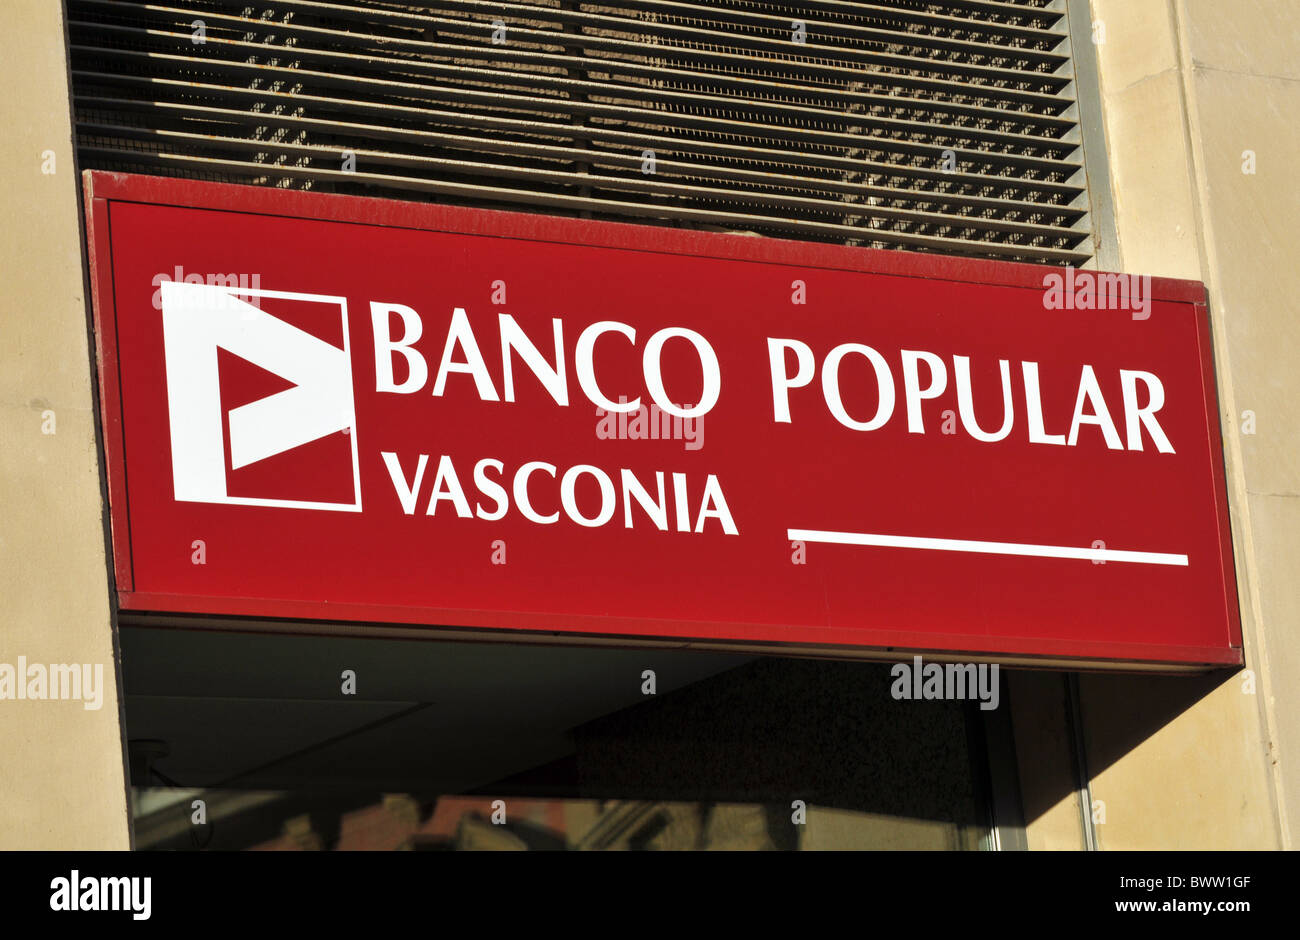 Banco Popular sign, Spain - Stock Image